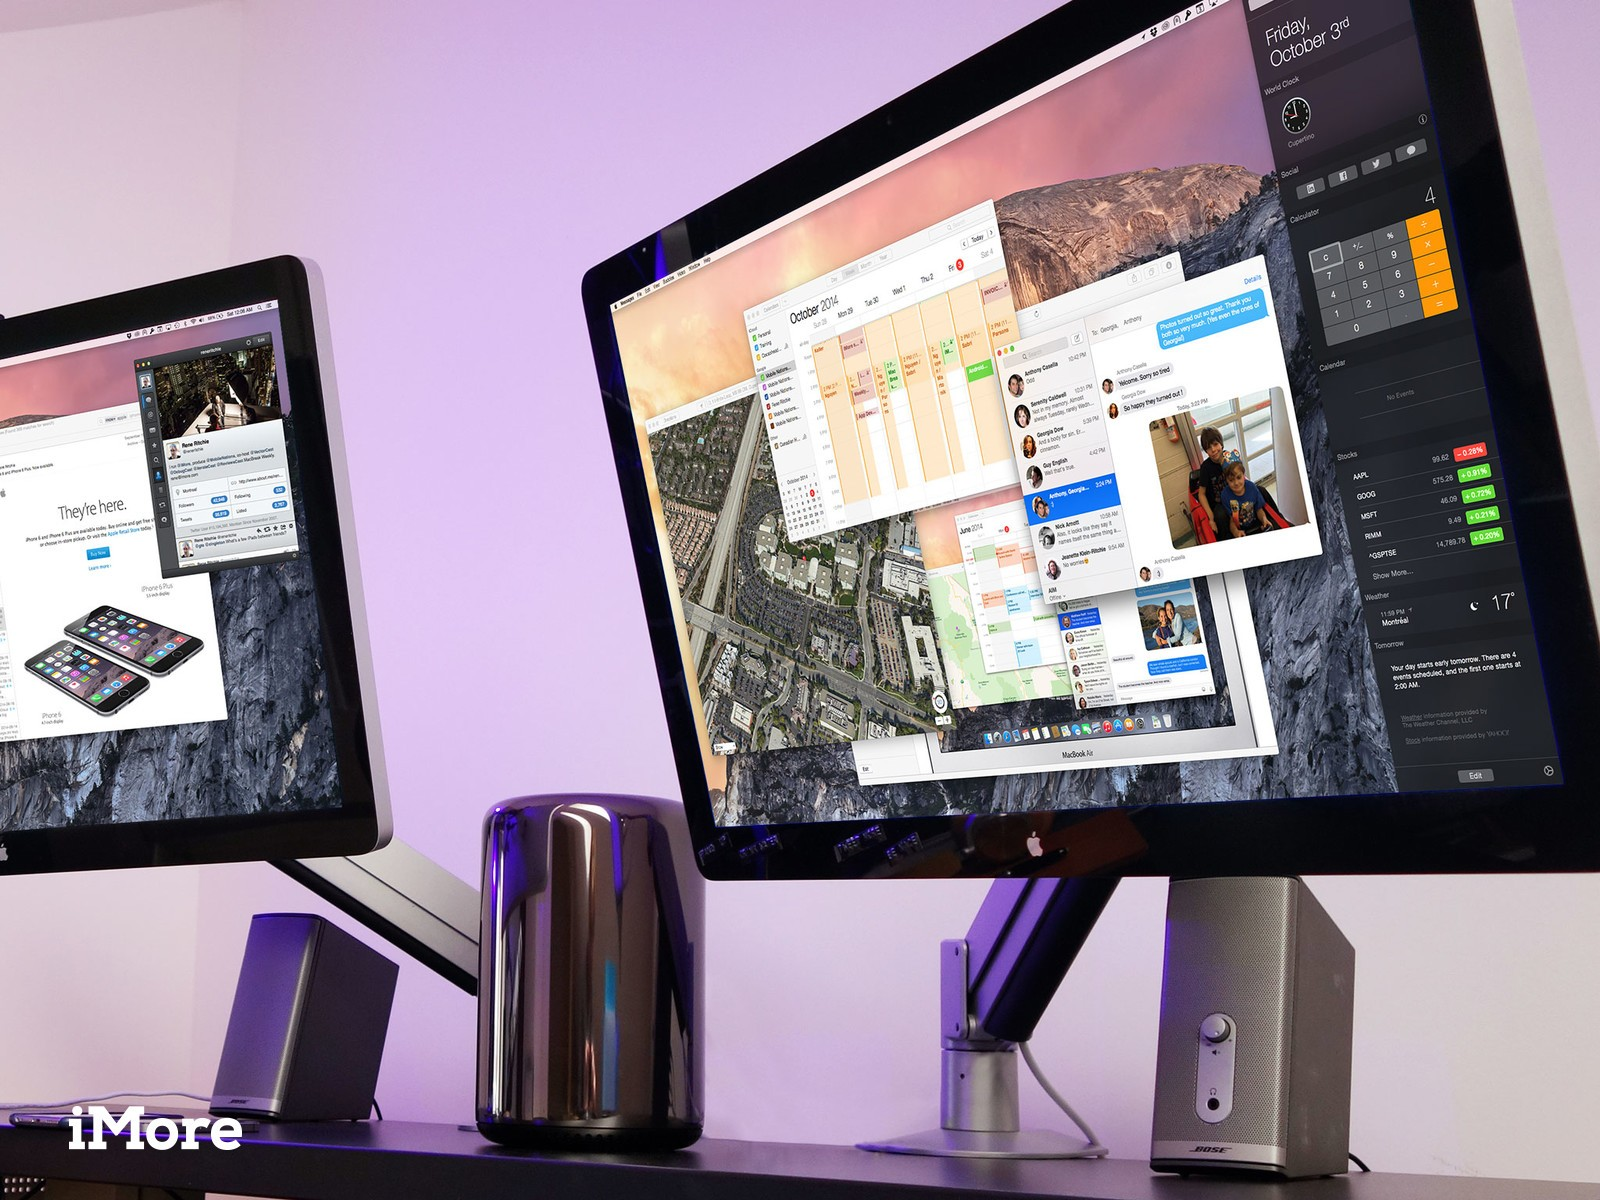 OS X Yosemite design language: Explained